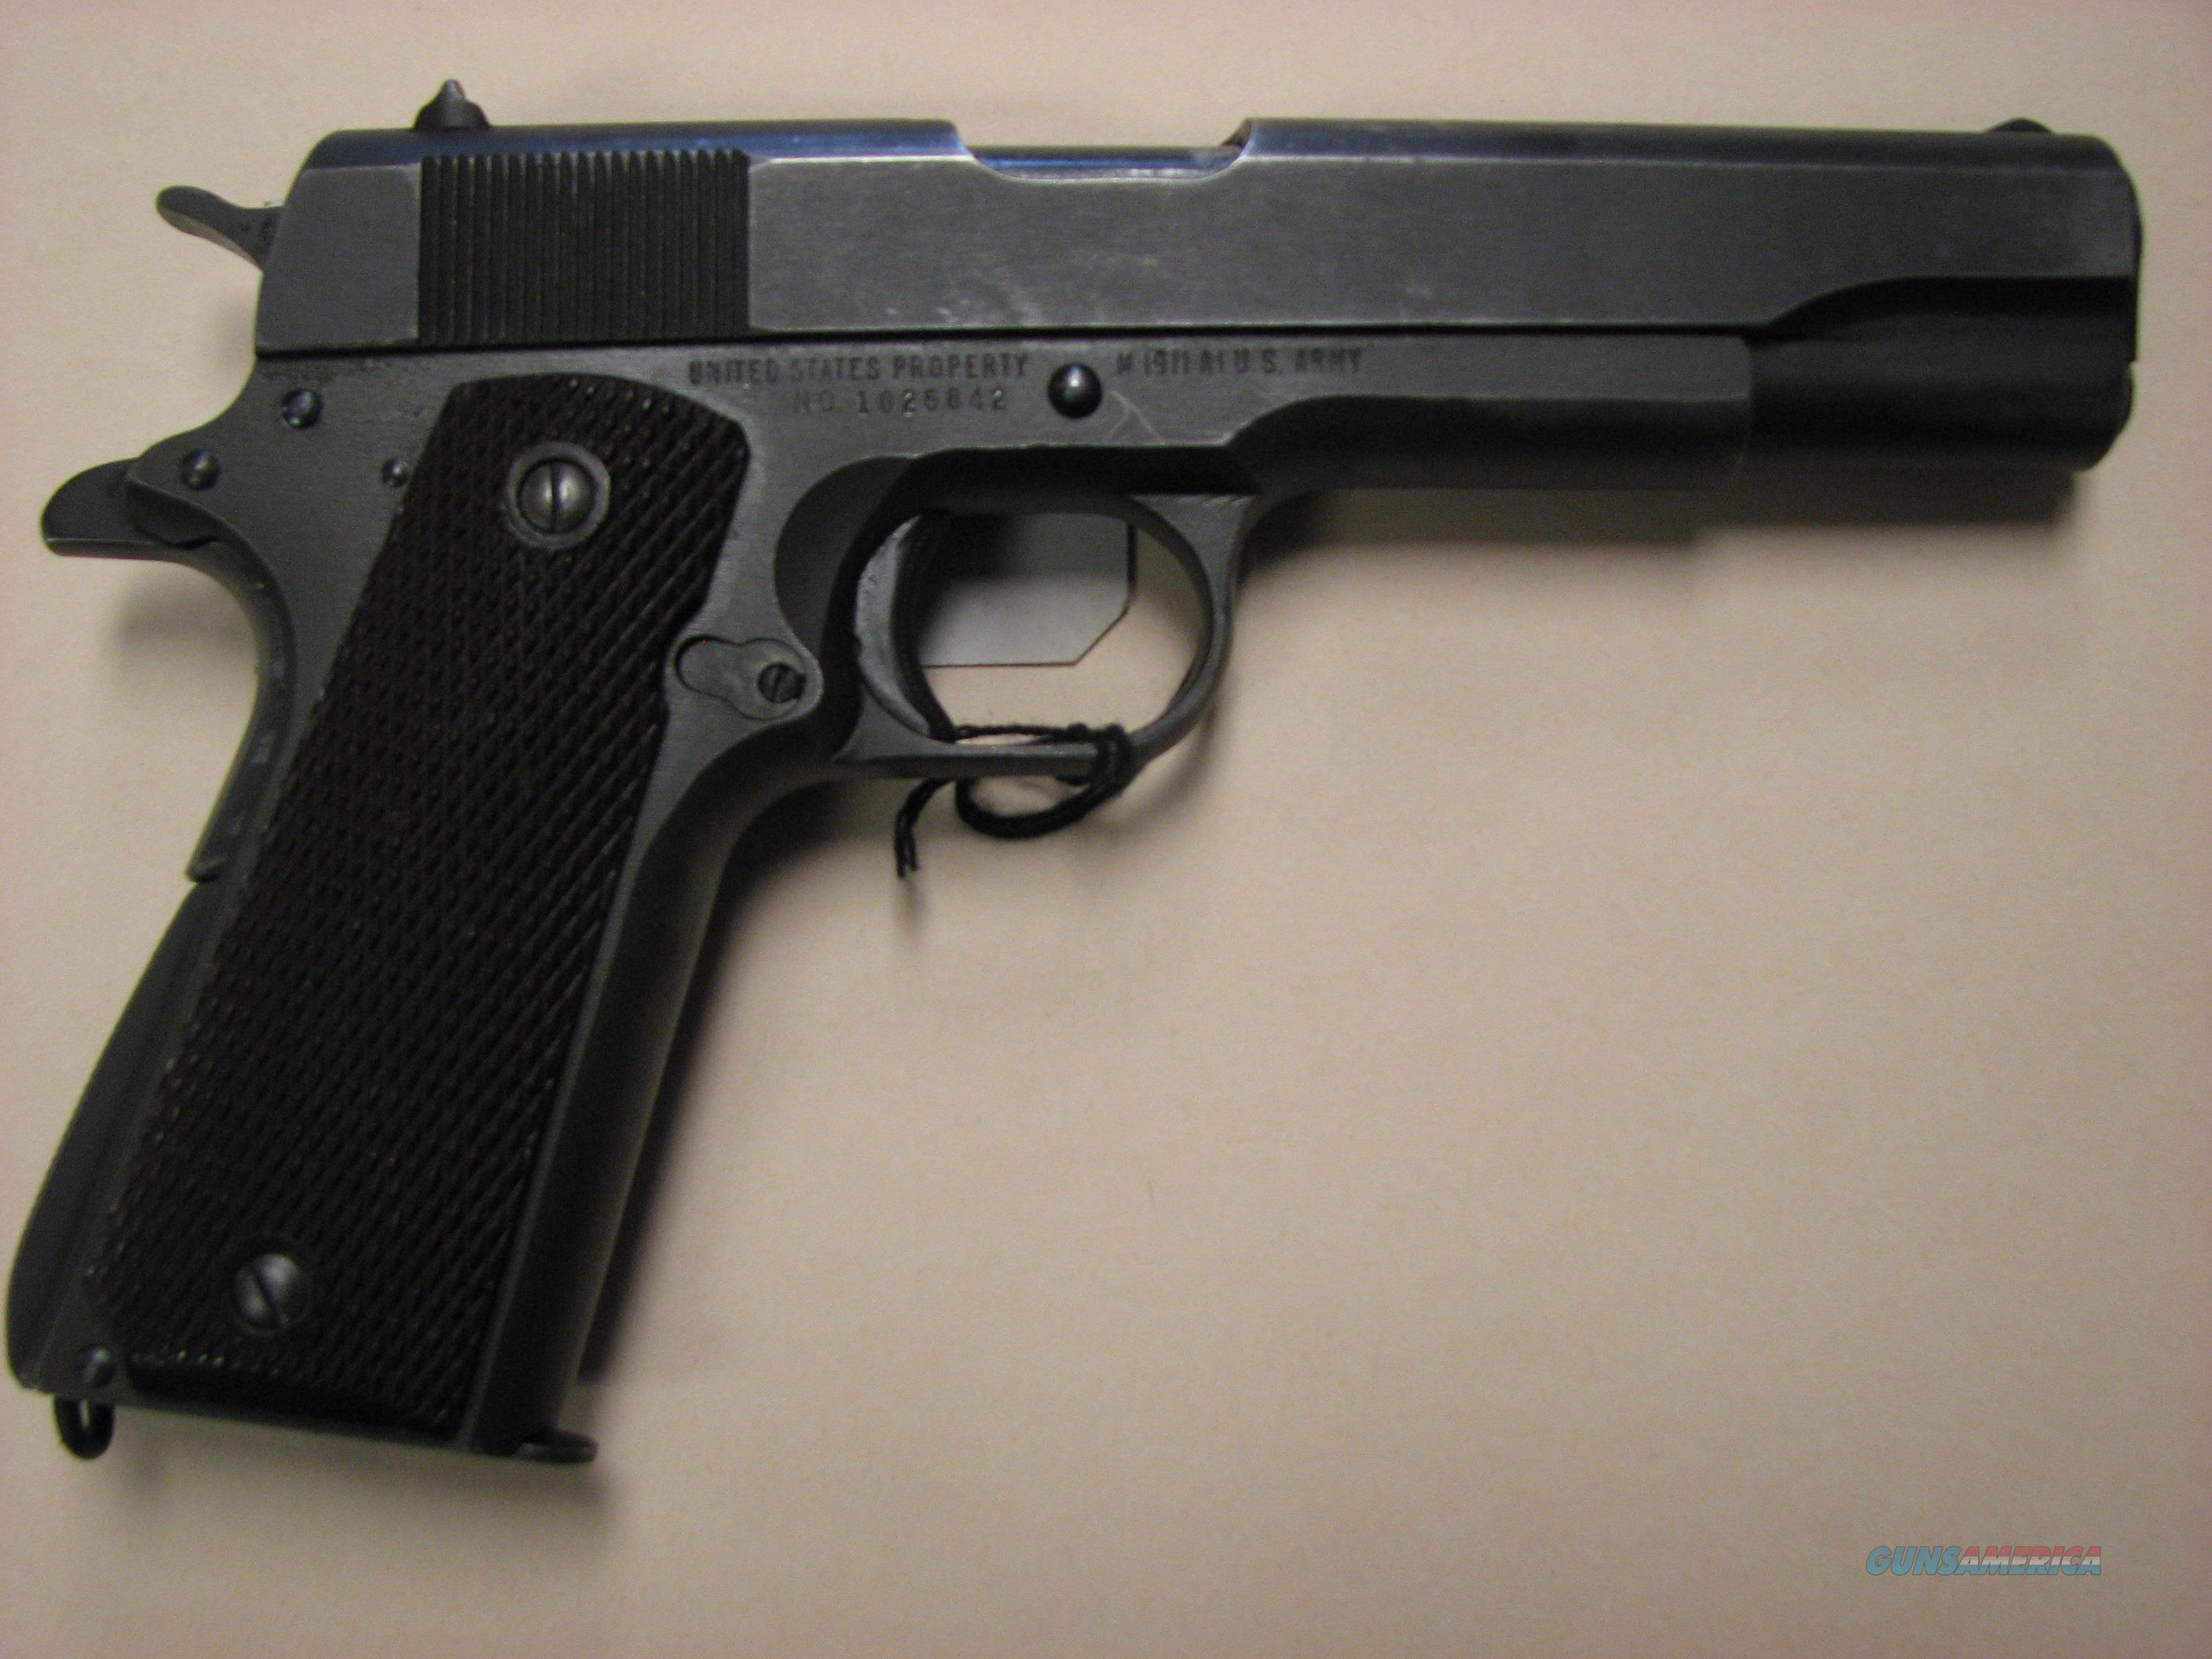 REMINGTON 1911-A1  45ACP  LATE 1943  Guns > Pistols > Remington Pistols - Modern > 1911